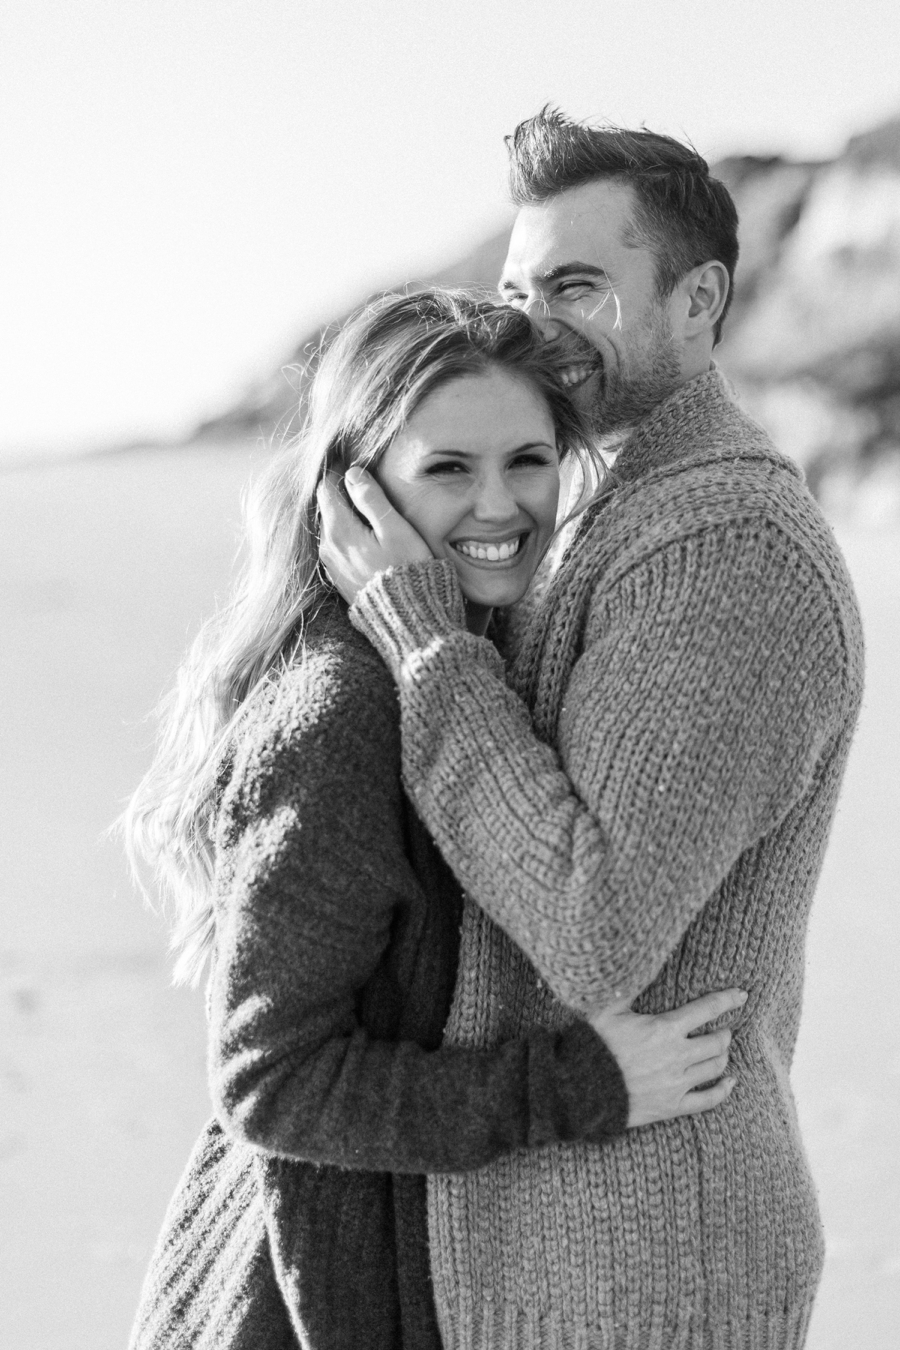 taylor_kinzie_photography_los_angeles_wedding_photographer_beach_engagement_session_0014